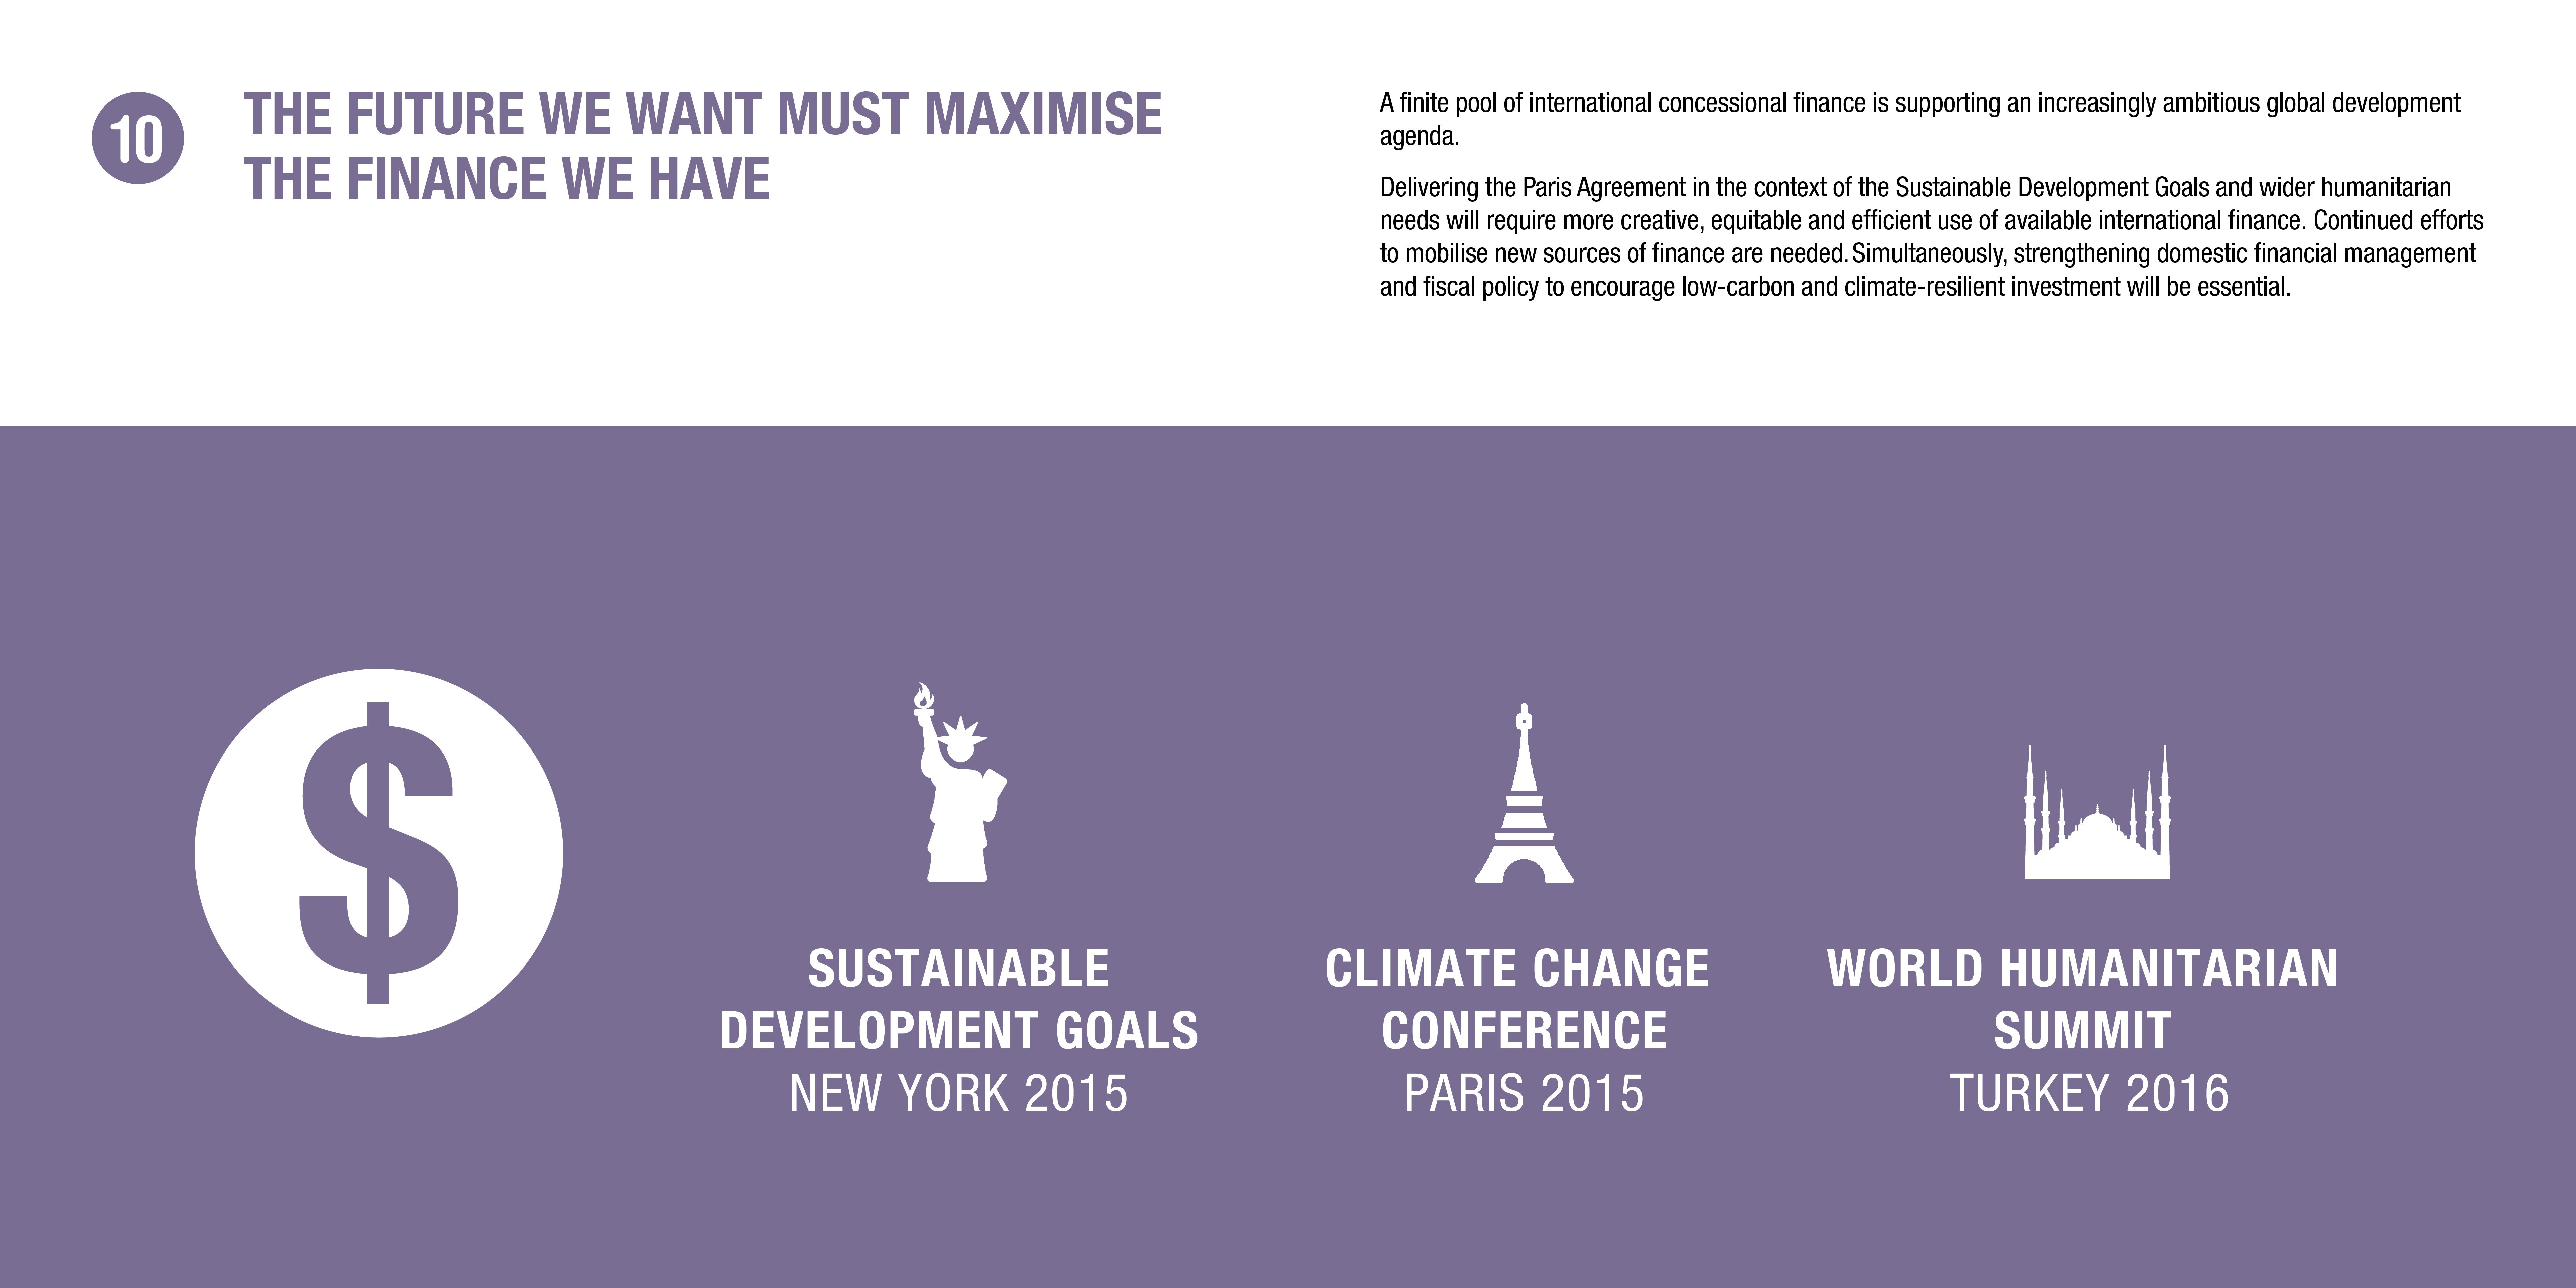 Infographic: the future we want must maximise the finance we have